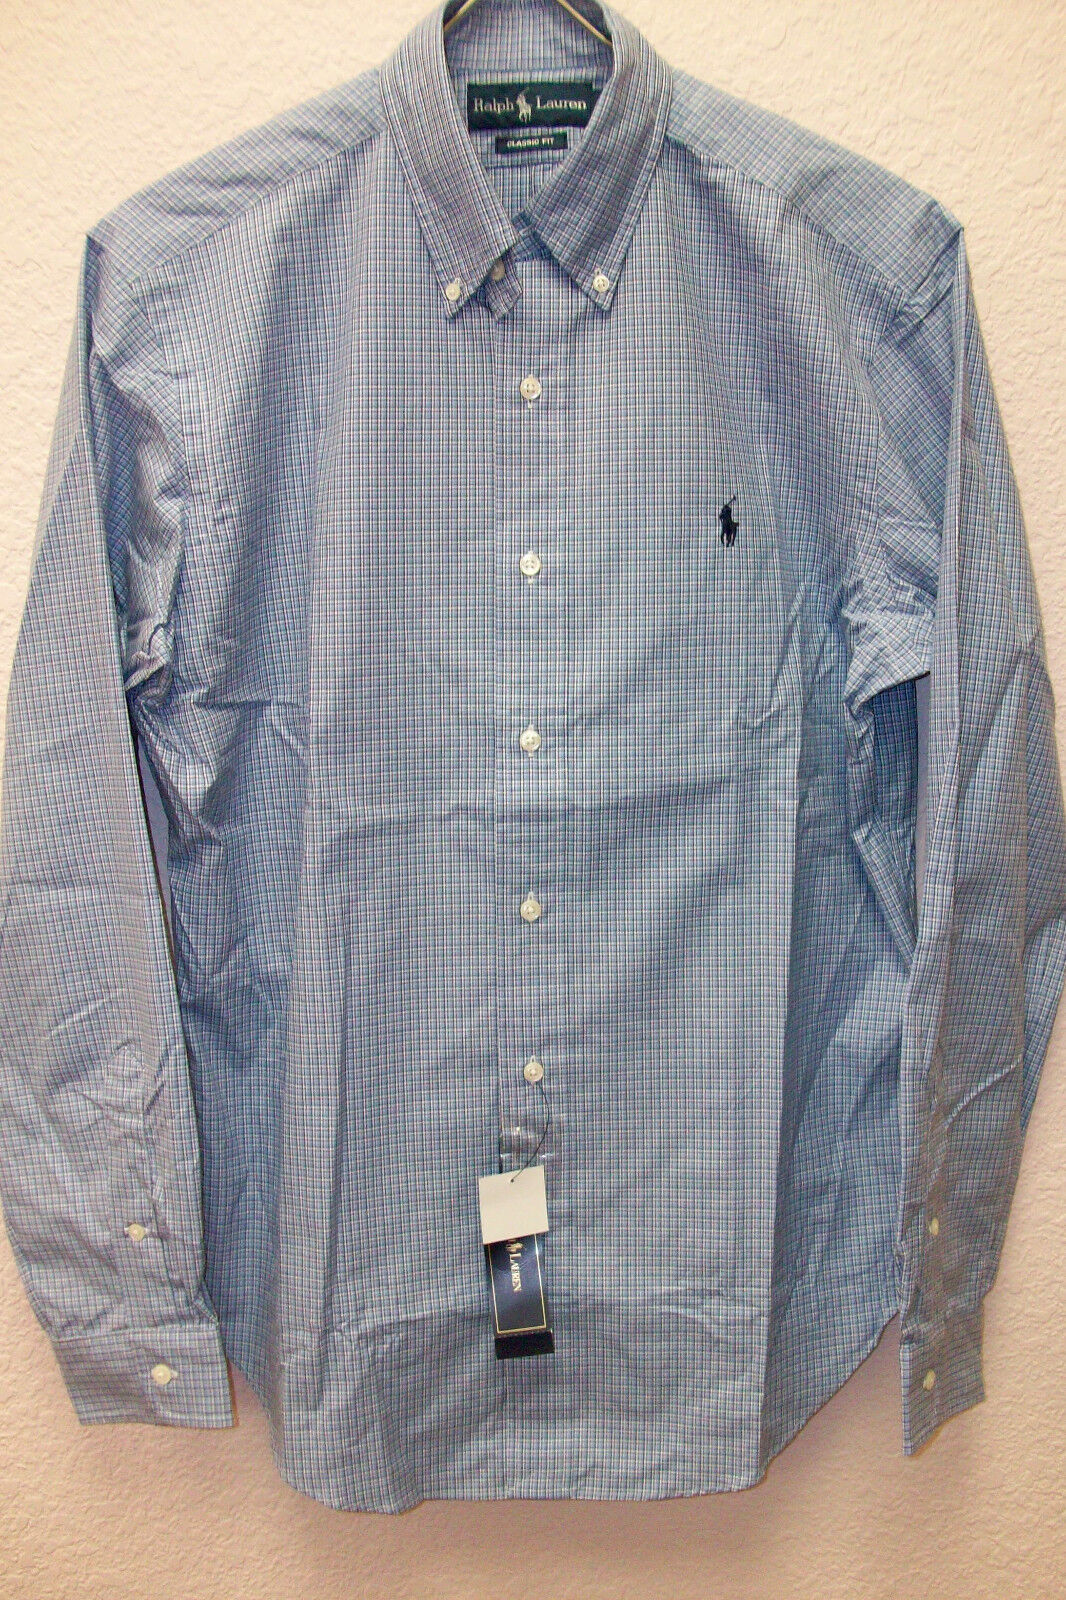 Polo Ralph Lauren Classic Fit Woven bluee White Plaid Shirt  Pony  Small S NWT